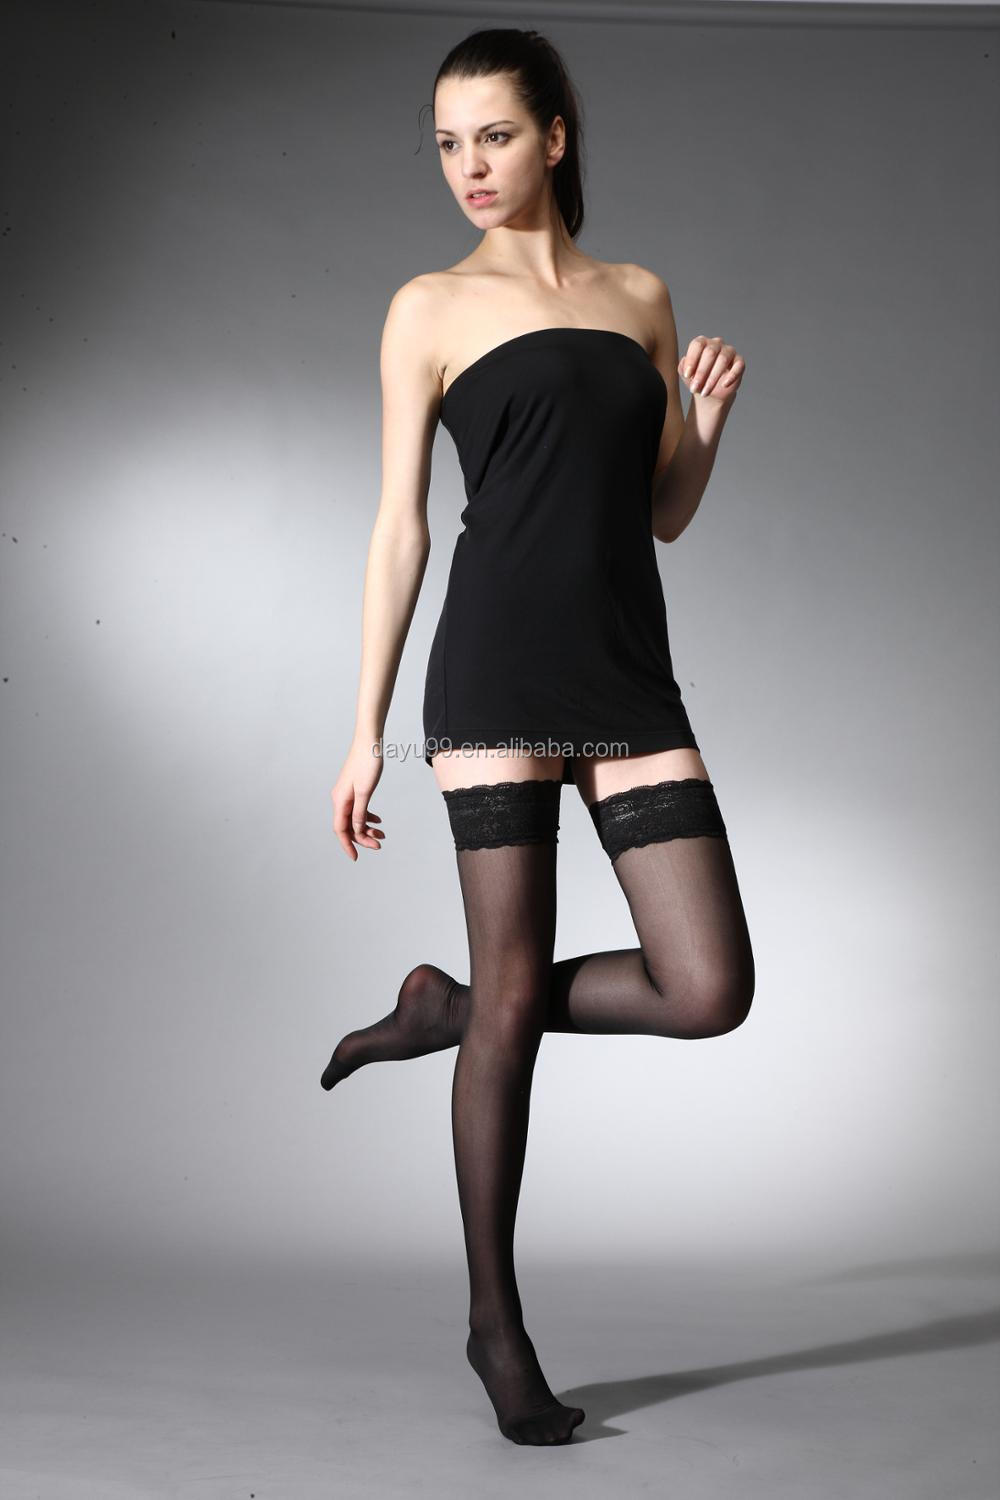 Sheer Thigh High Stocking Health Care Compression socks Taiwan produced